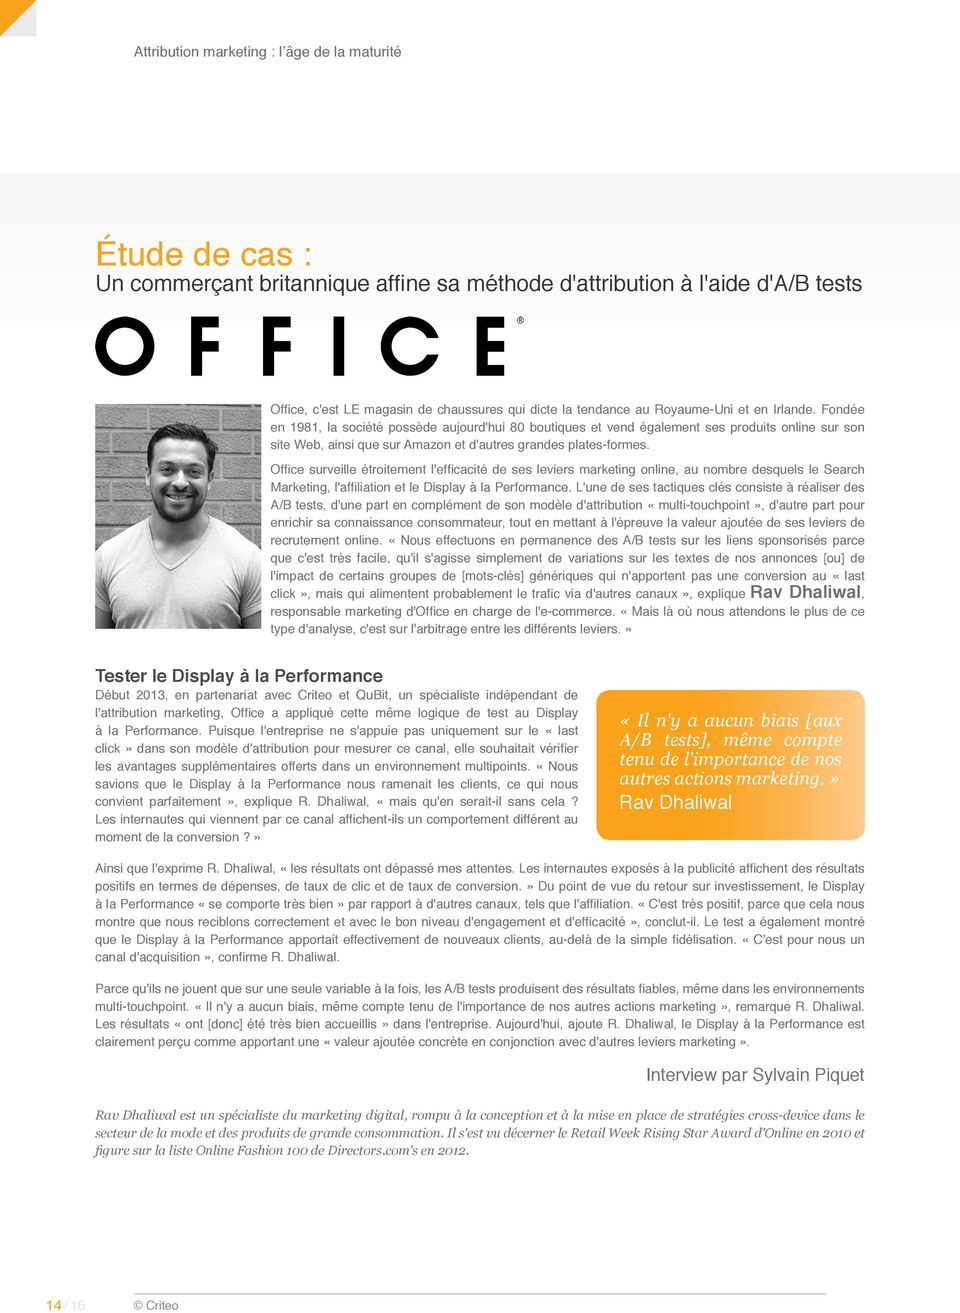 Office surveille étroitement l'efficacité de ses leviers marketing online, au nombre desquels le Search Marketing, l'affiliation et le Display à la Performance.